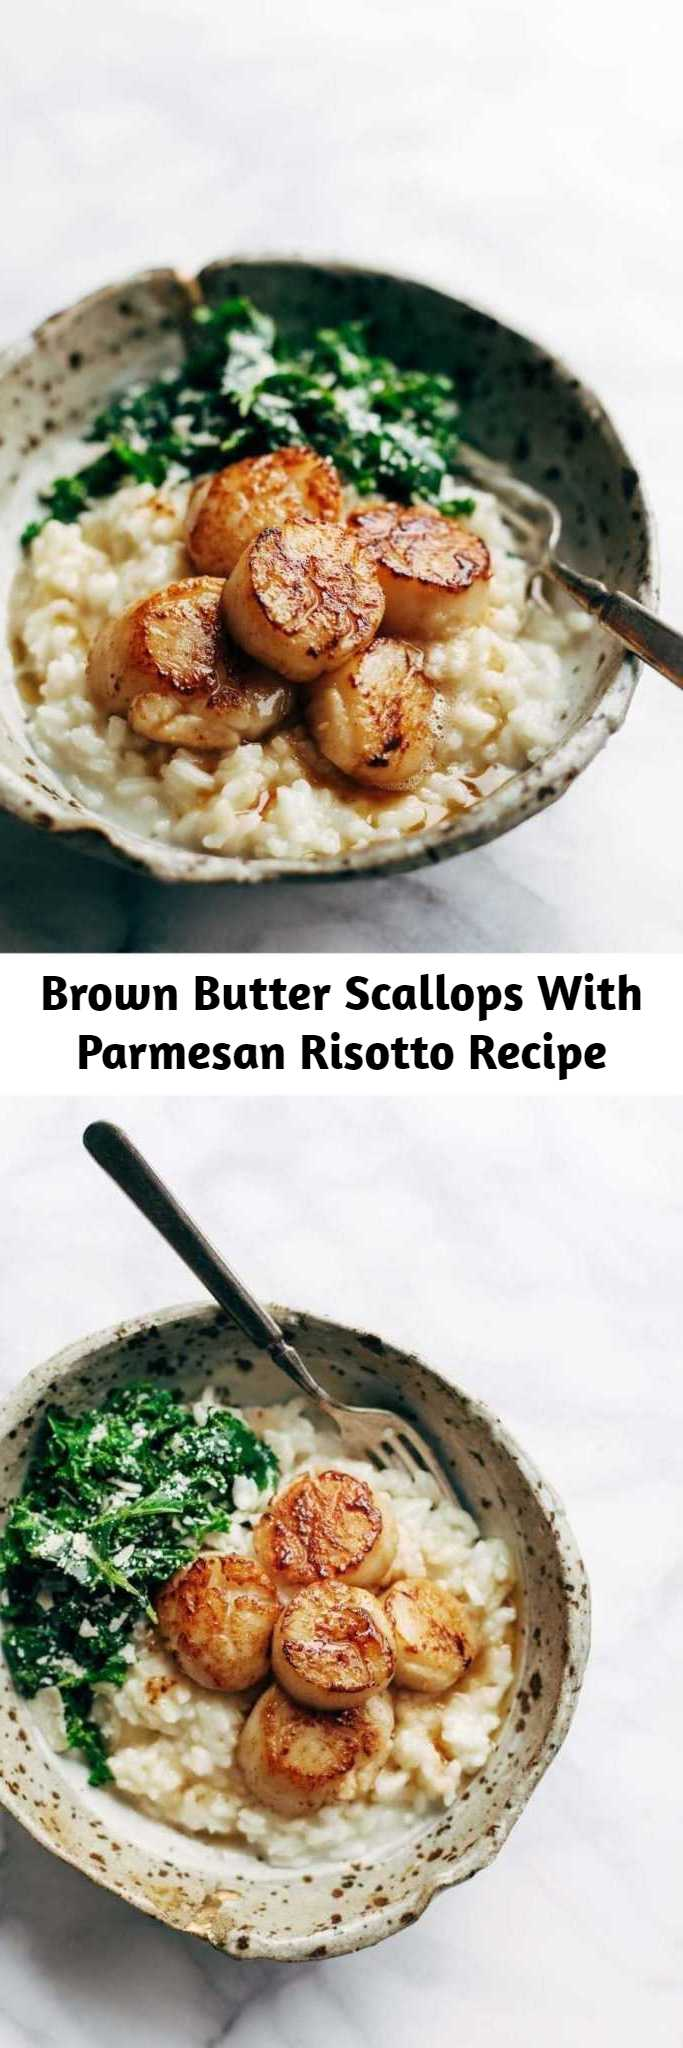 Brown Butter Scallops With Parmesan Risotto Recipe - Brown Butter Scallops with Parmesan Risotto! So Luscious! So Fancy! A cozy, romantic recipe that feels like a fancy restaurant meal at home!. Say hello to this delicious meal!